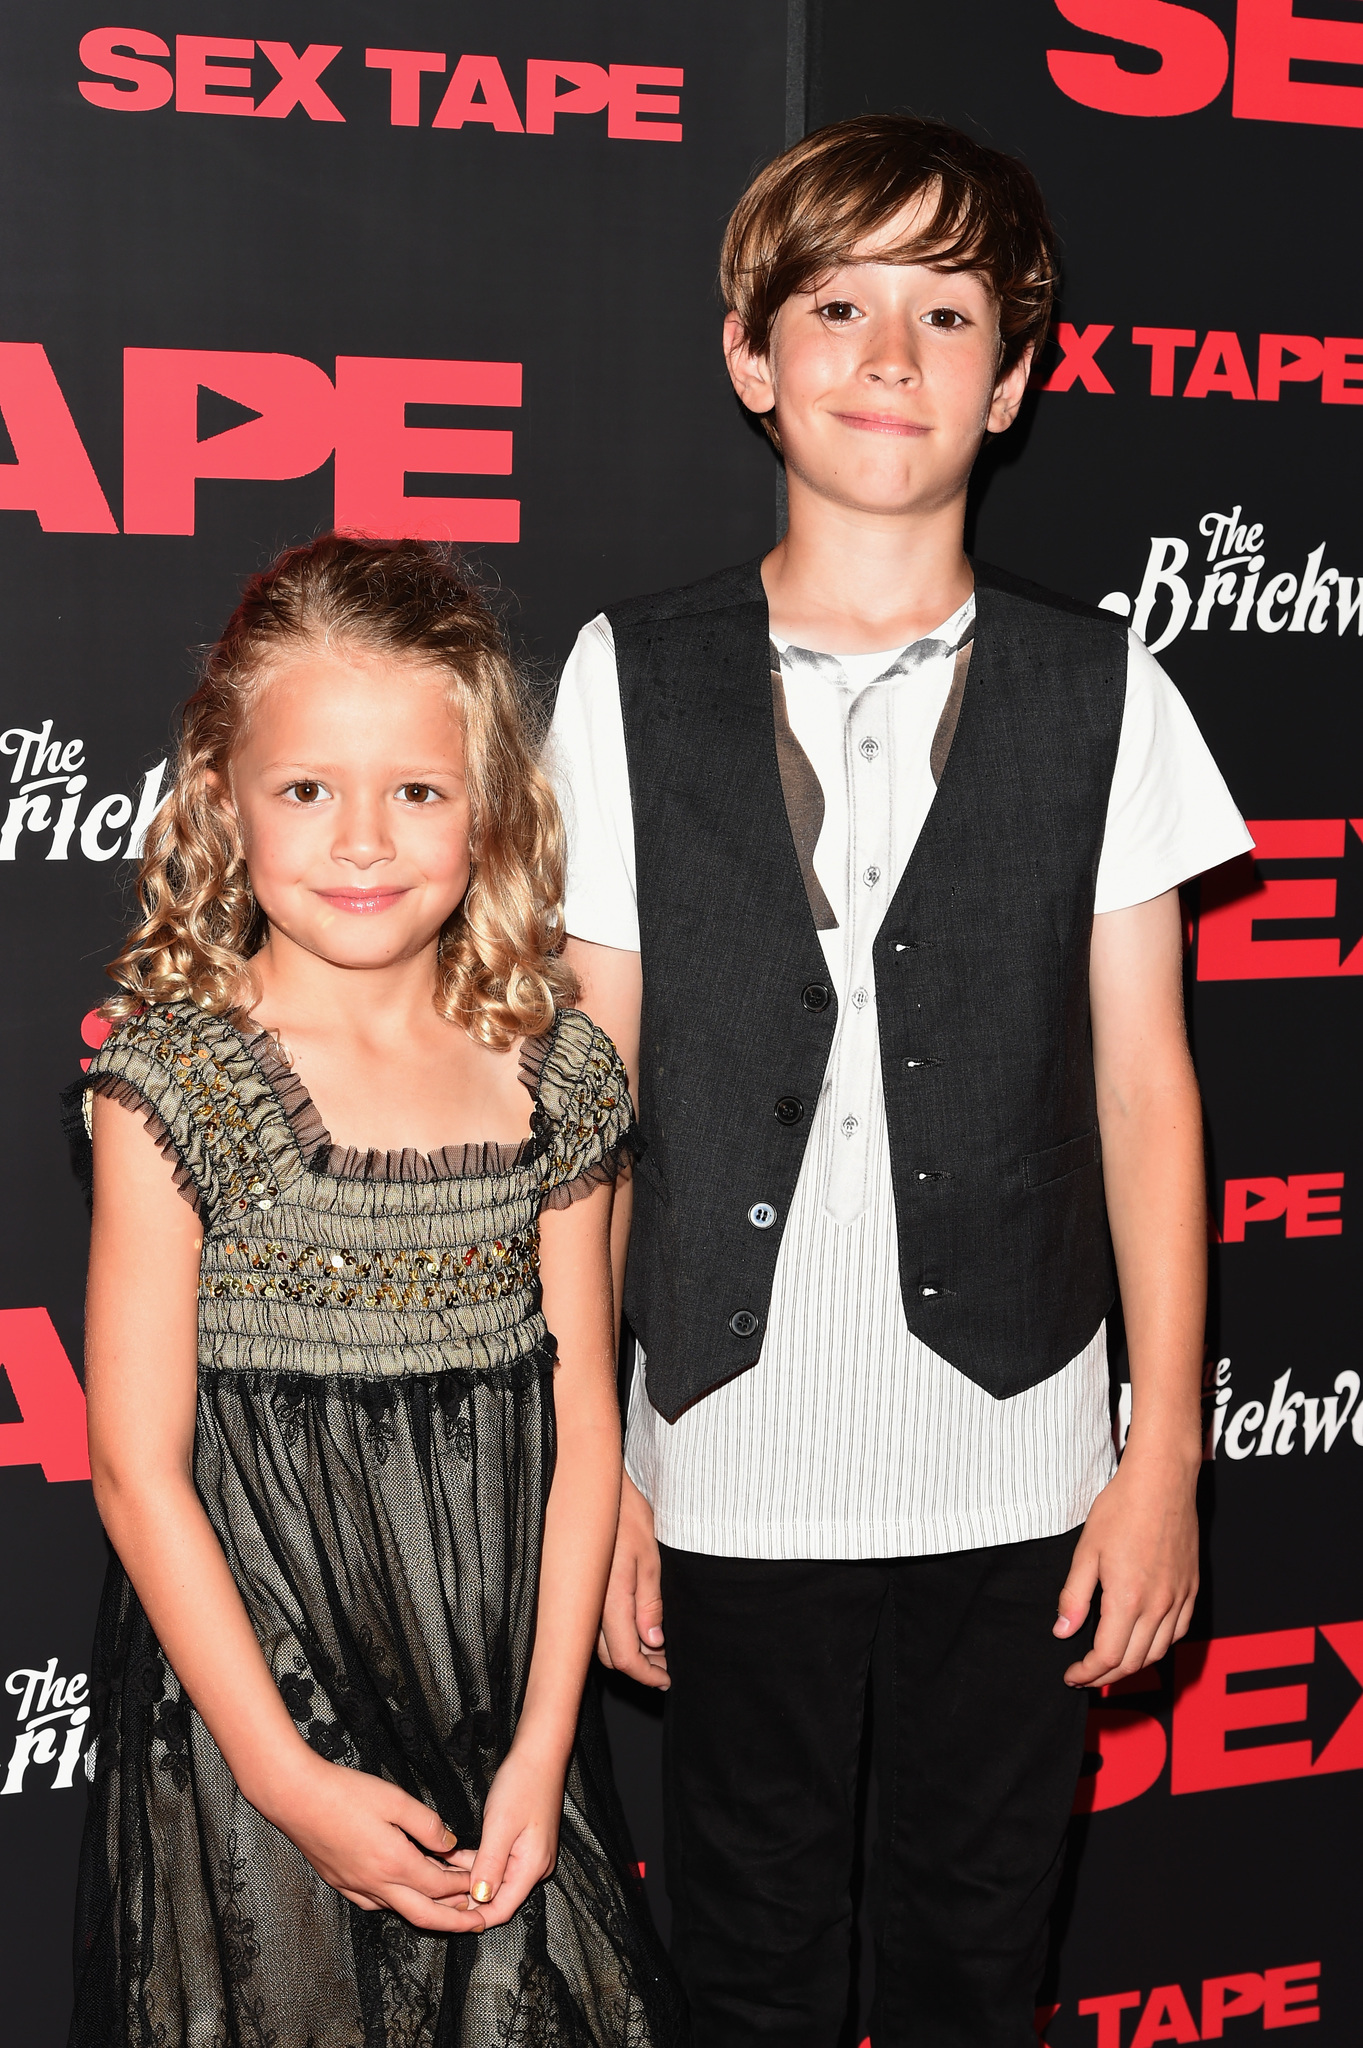 Sebastian Hedges Thomas and Giselle Eisenberg at an event for Sex Tape (2014)